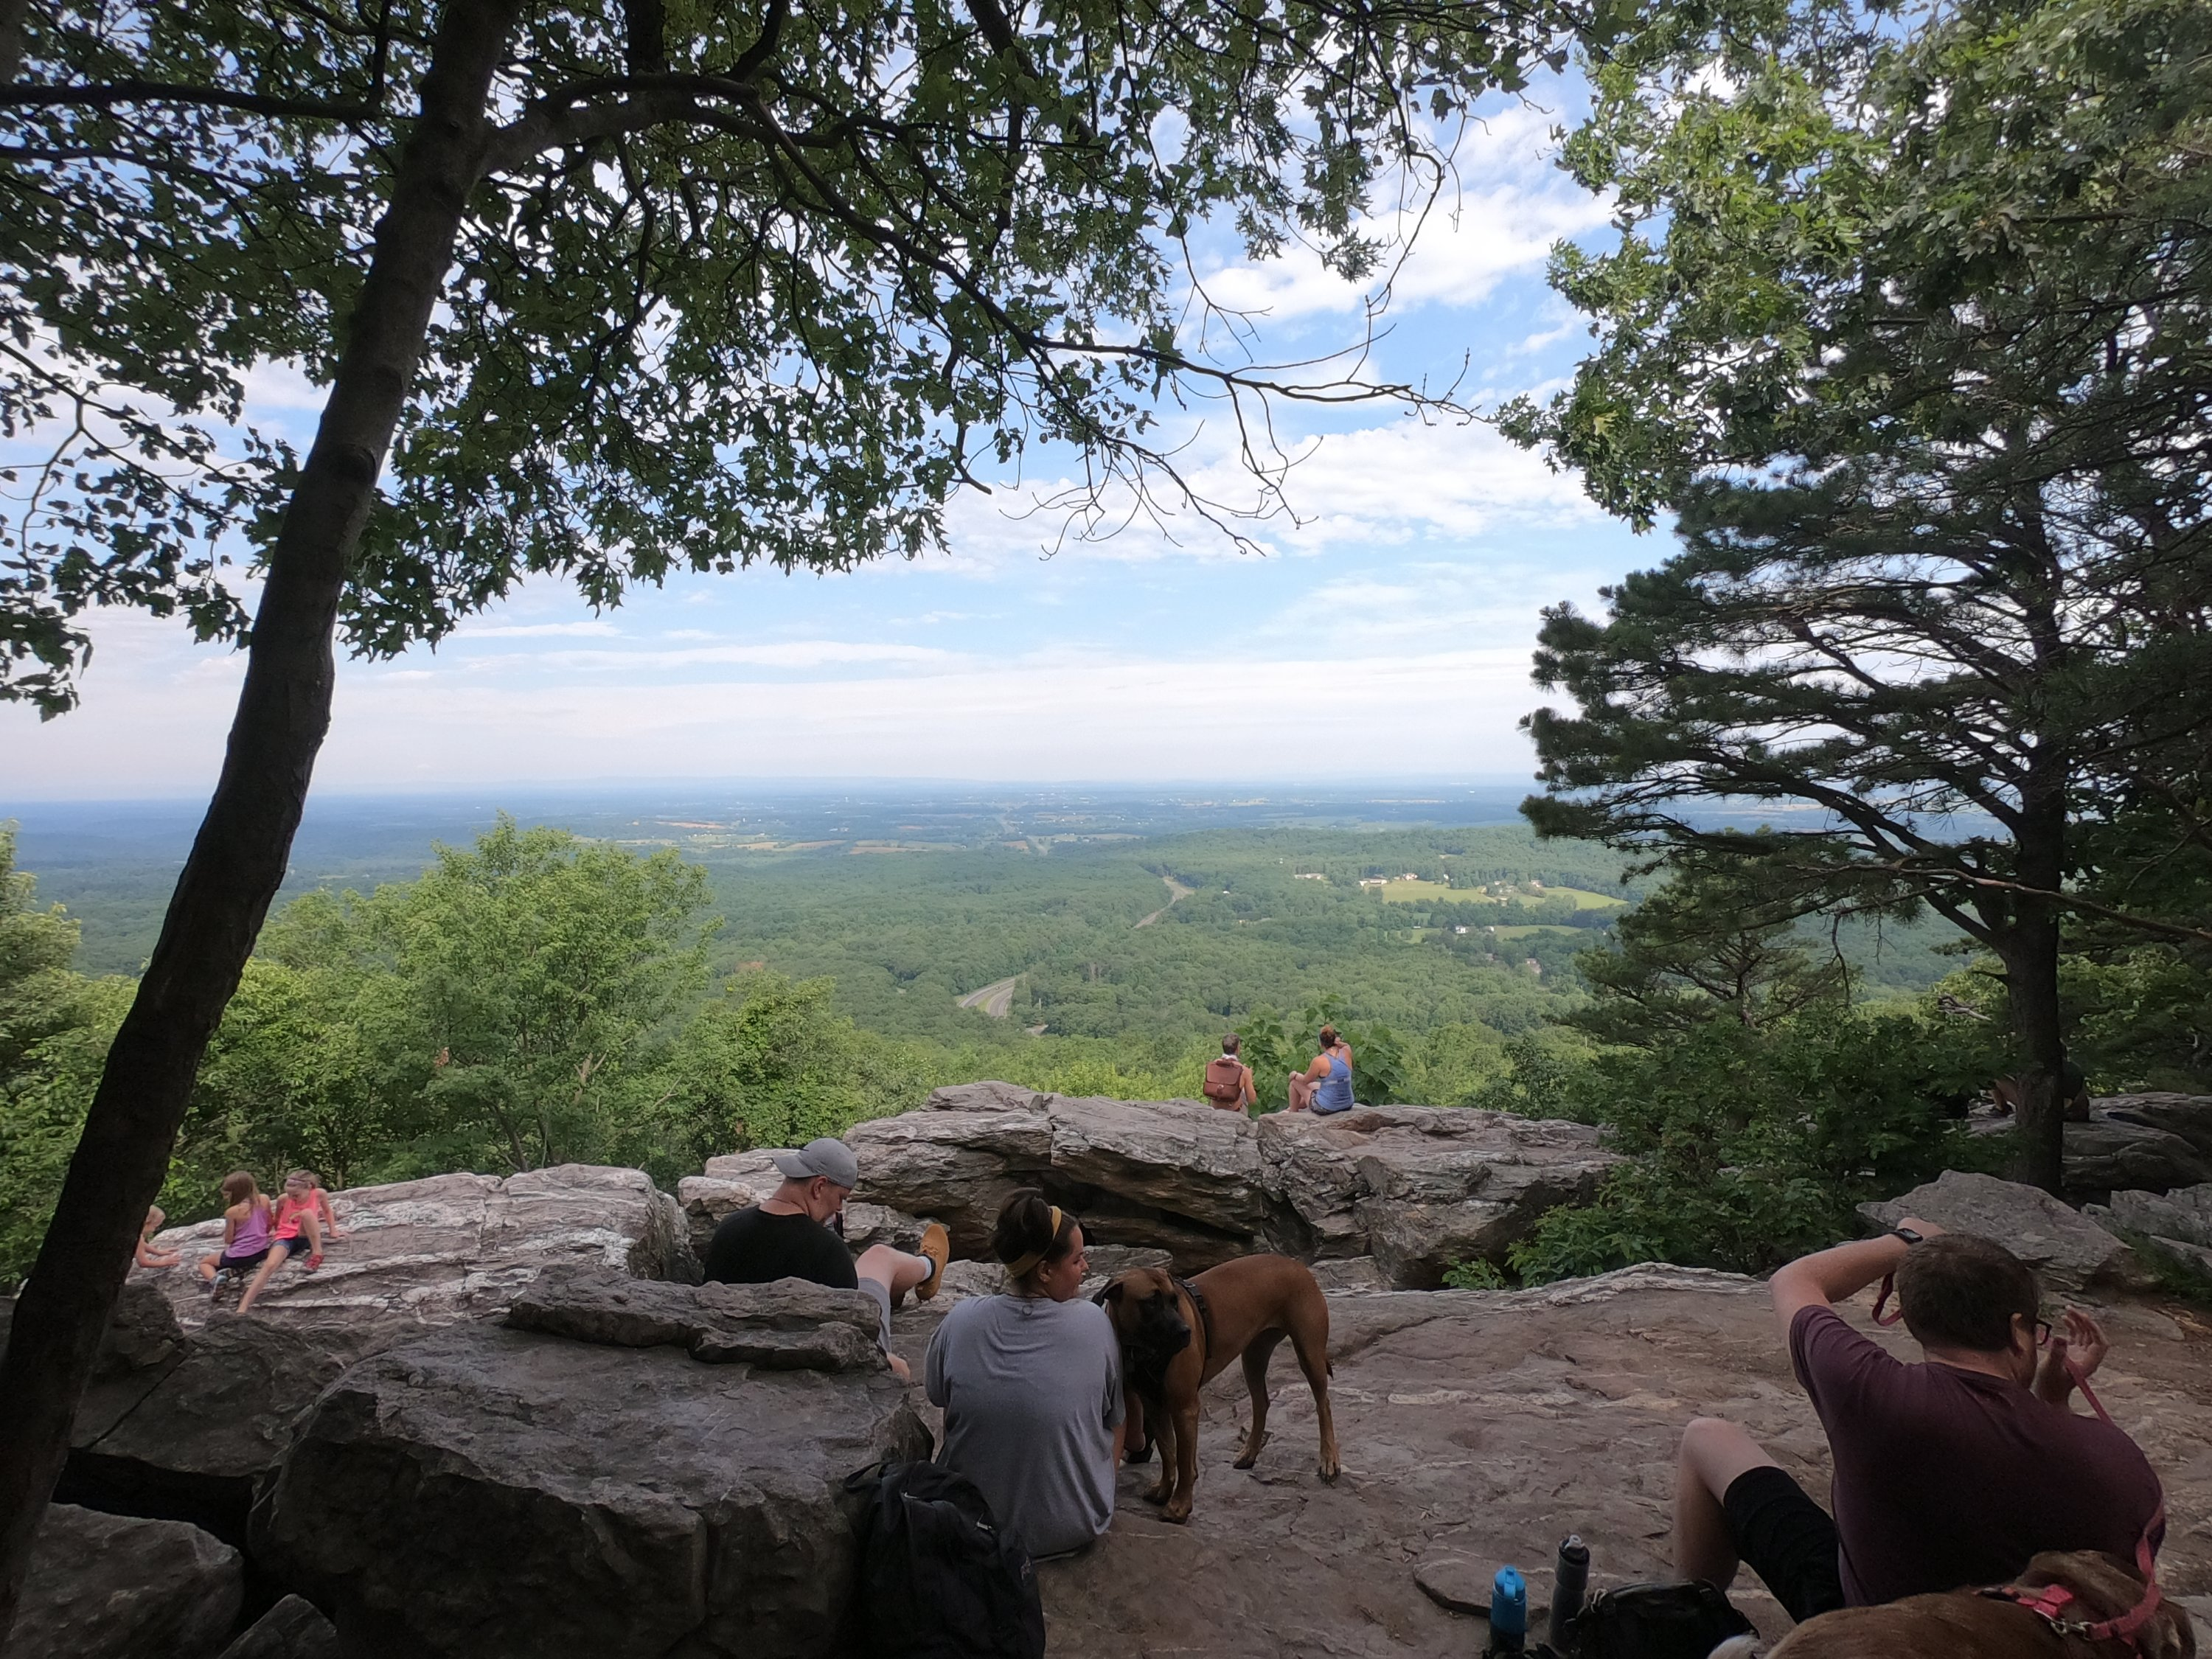 Bear's Den Overlook - 06-27-2020